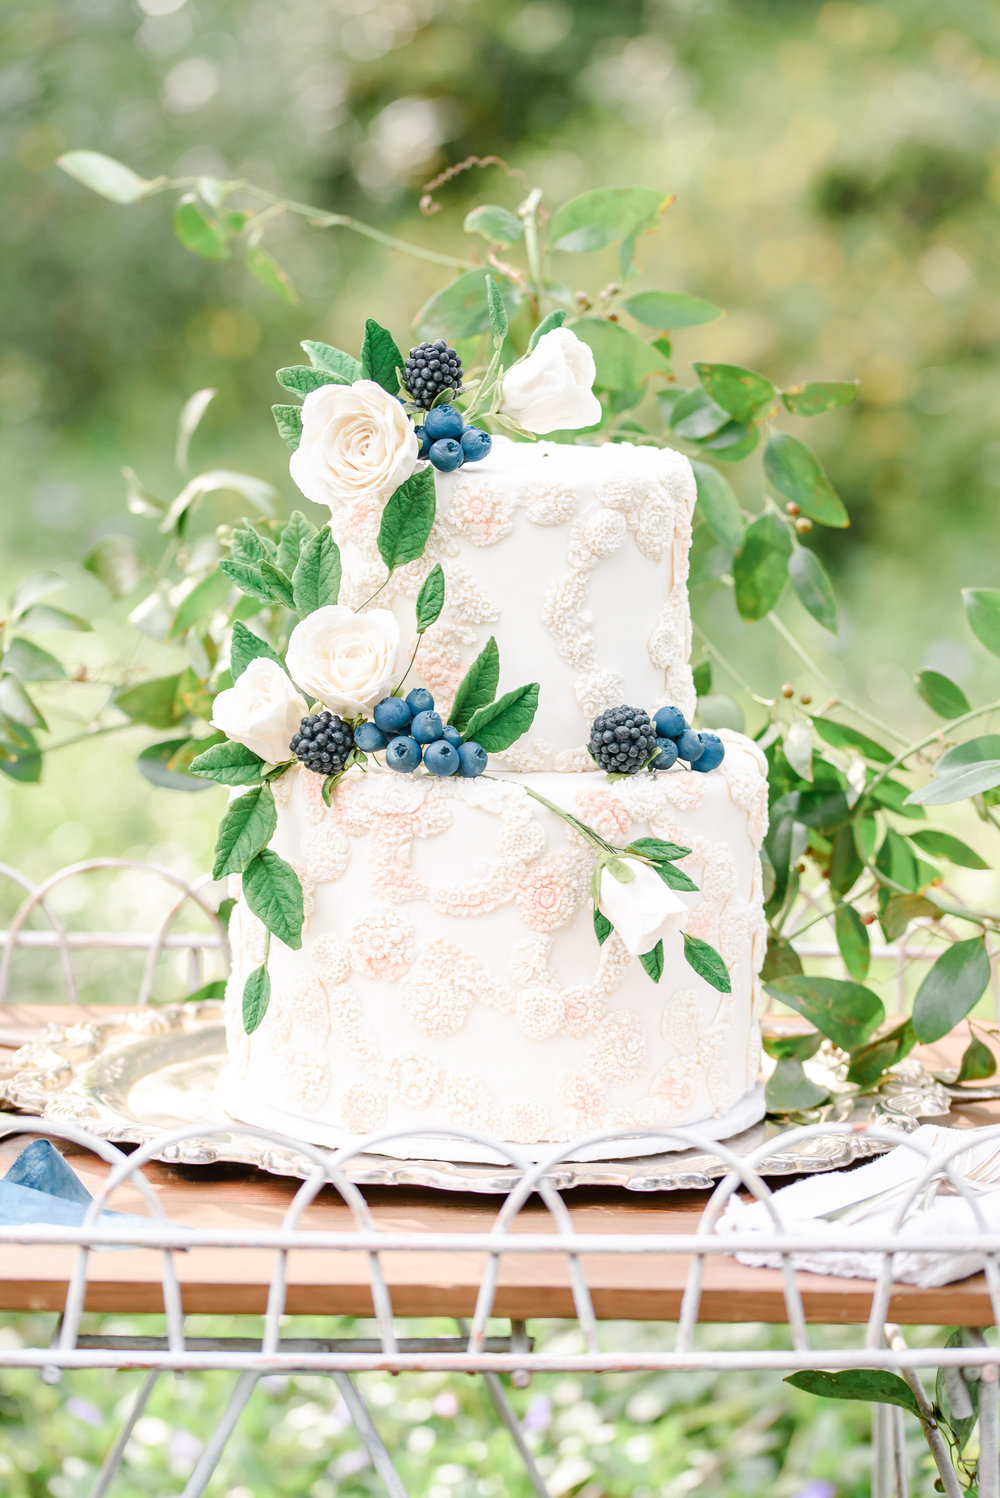 Garden Wedding Inspiration | Wedding Cake | Two-tier wedding cake